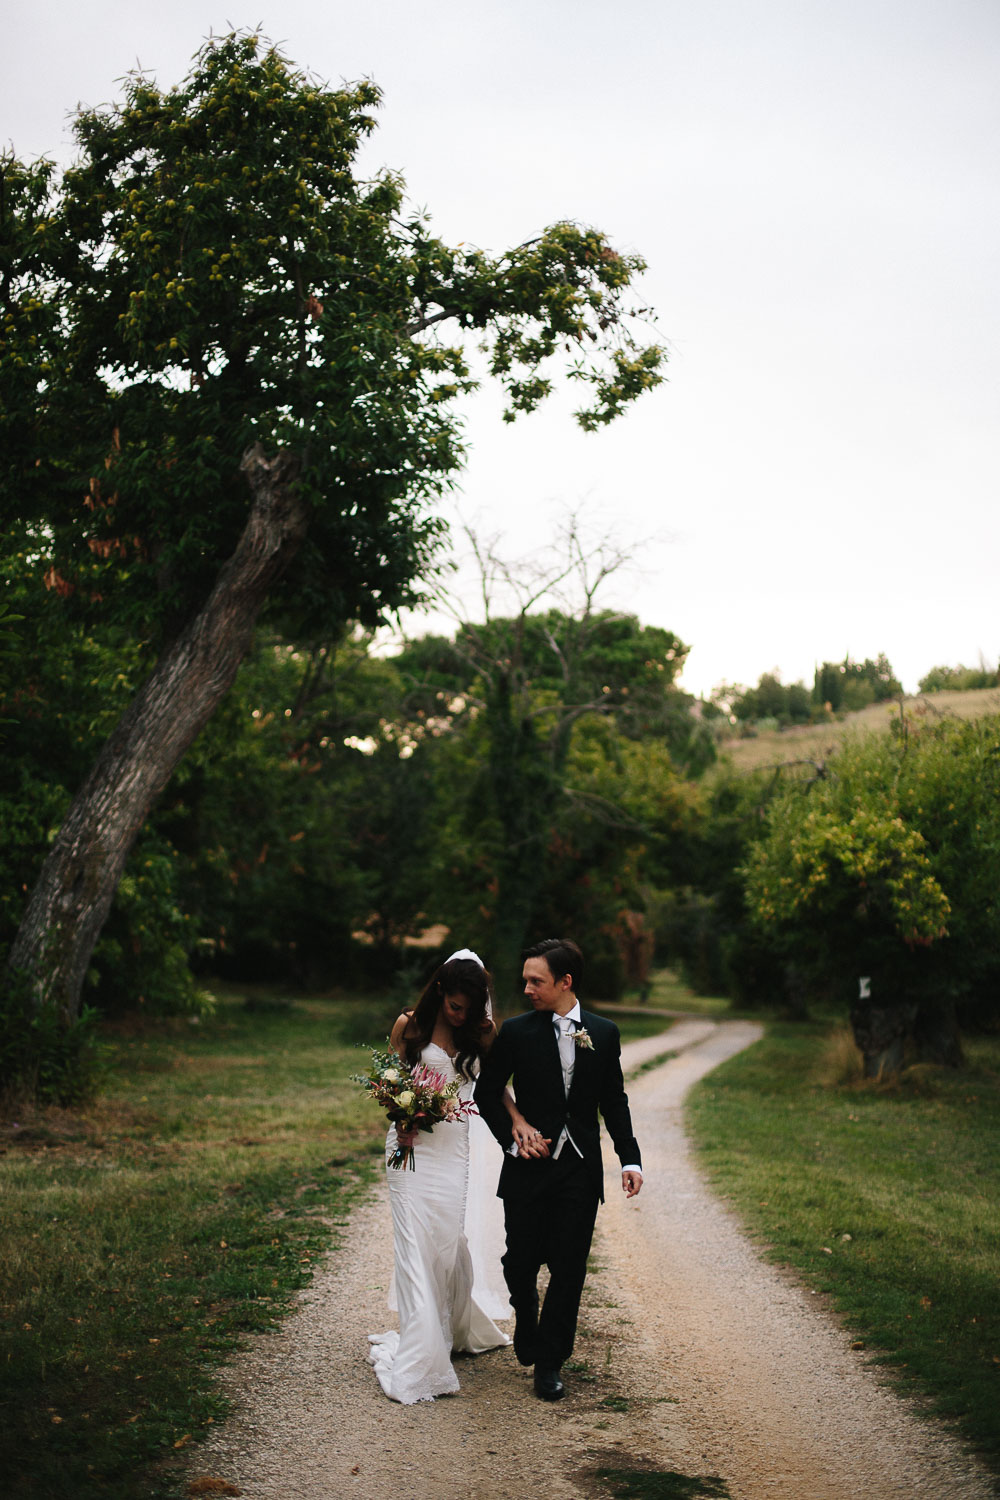 74-bride-groom-walking.jpg